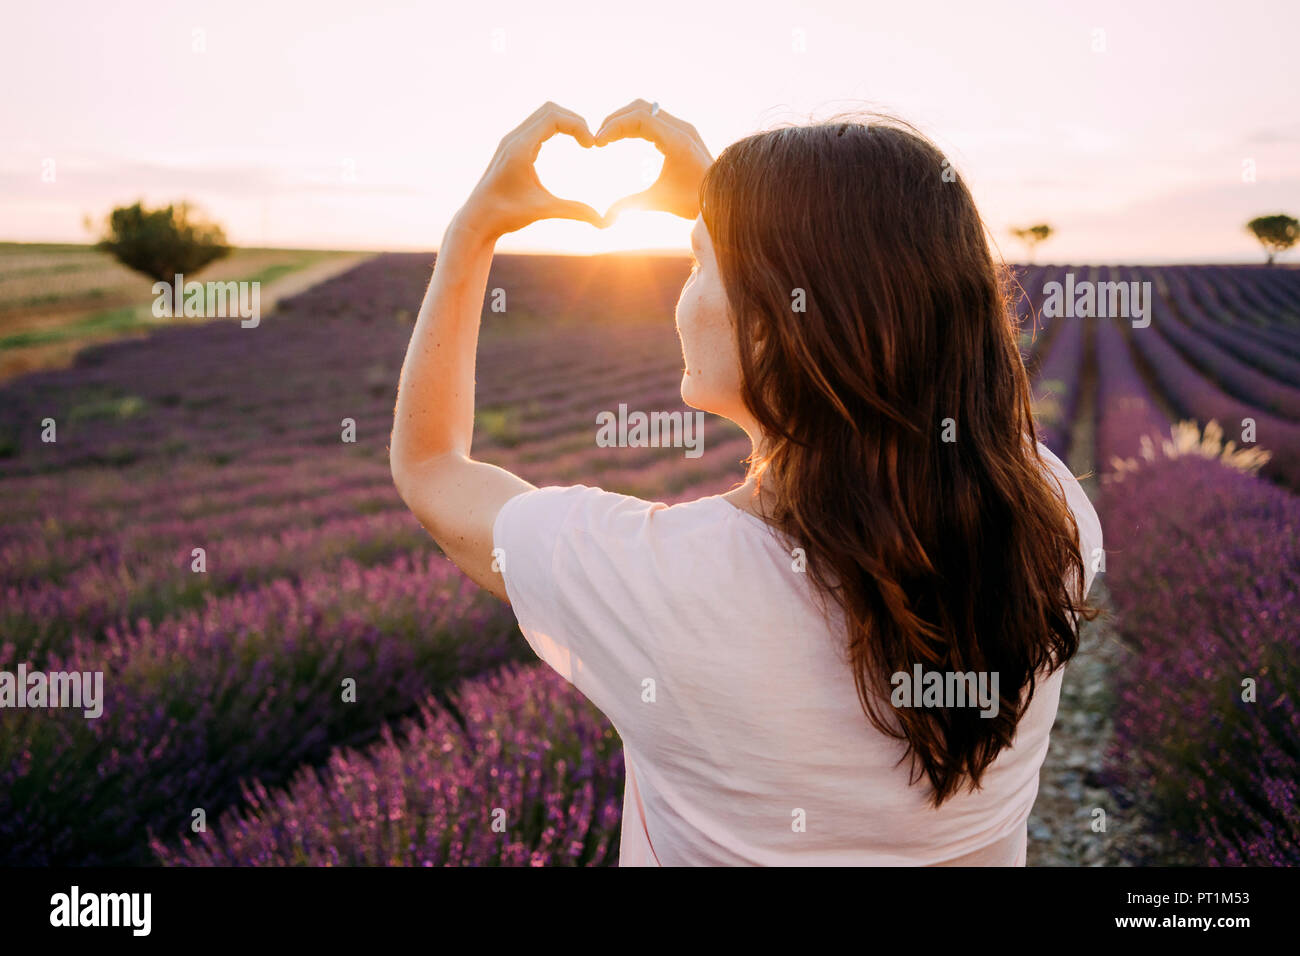 France, Valensole, back view of woman shaping heart with her hands in front of lavender field at sunset - Stock Image